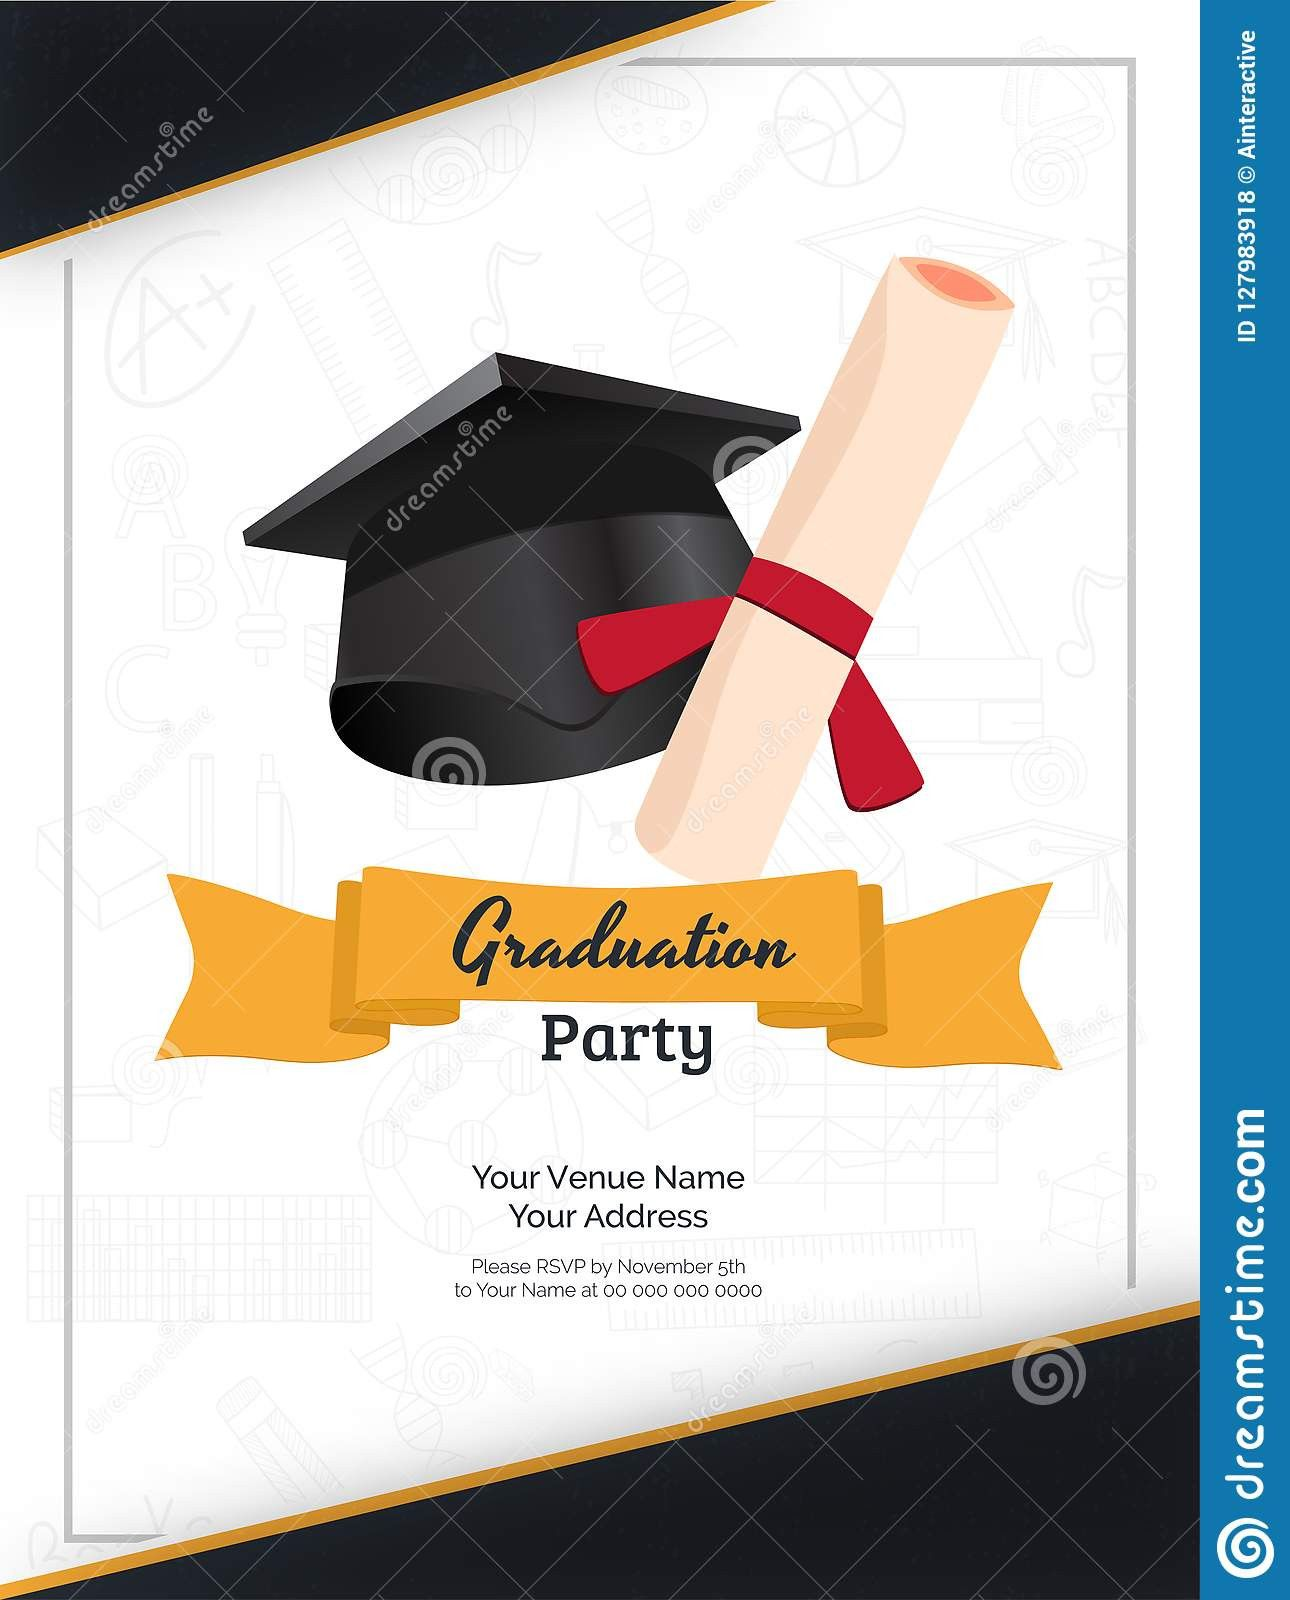 Graduation Name Cards Template Party Invite Template Graduation Party Invitations Templates Graduation Party Invitations